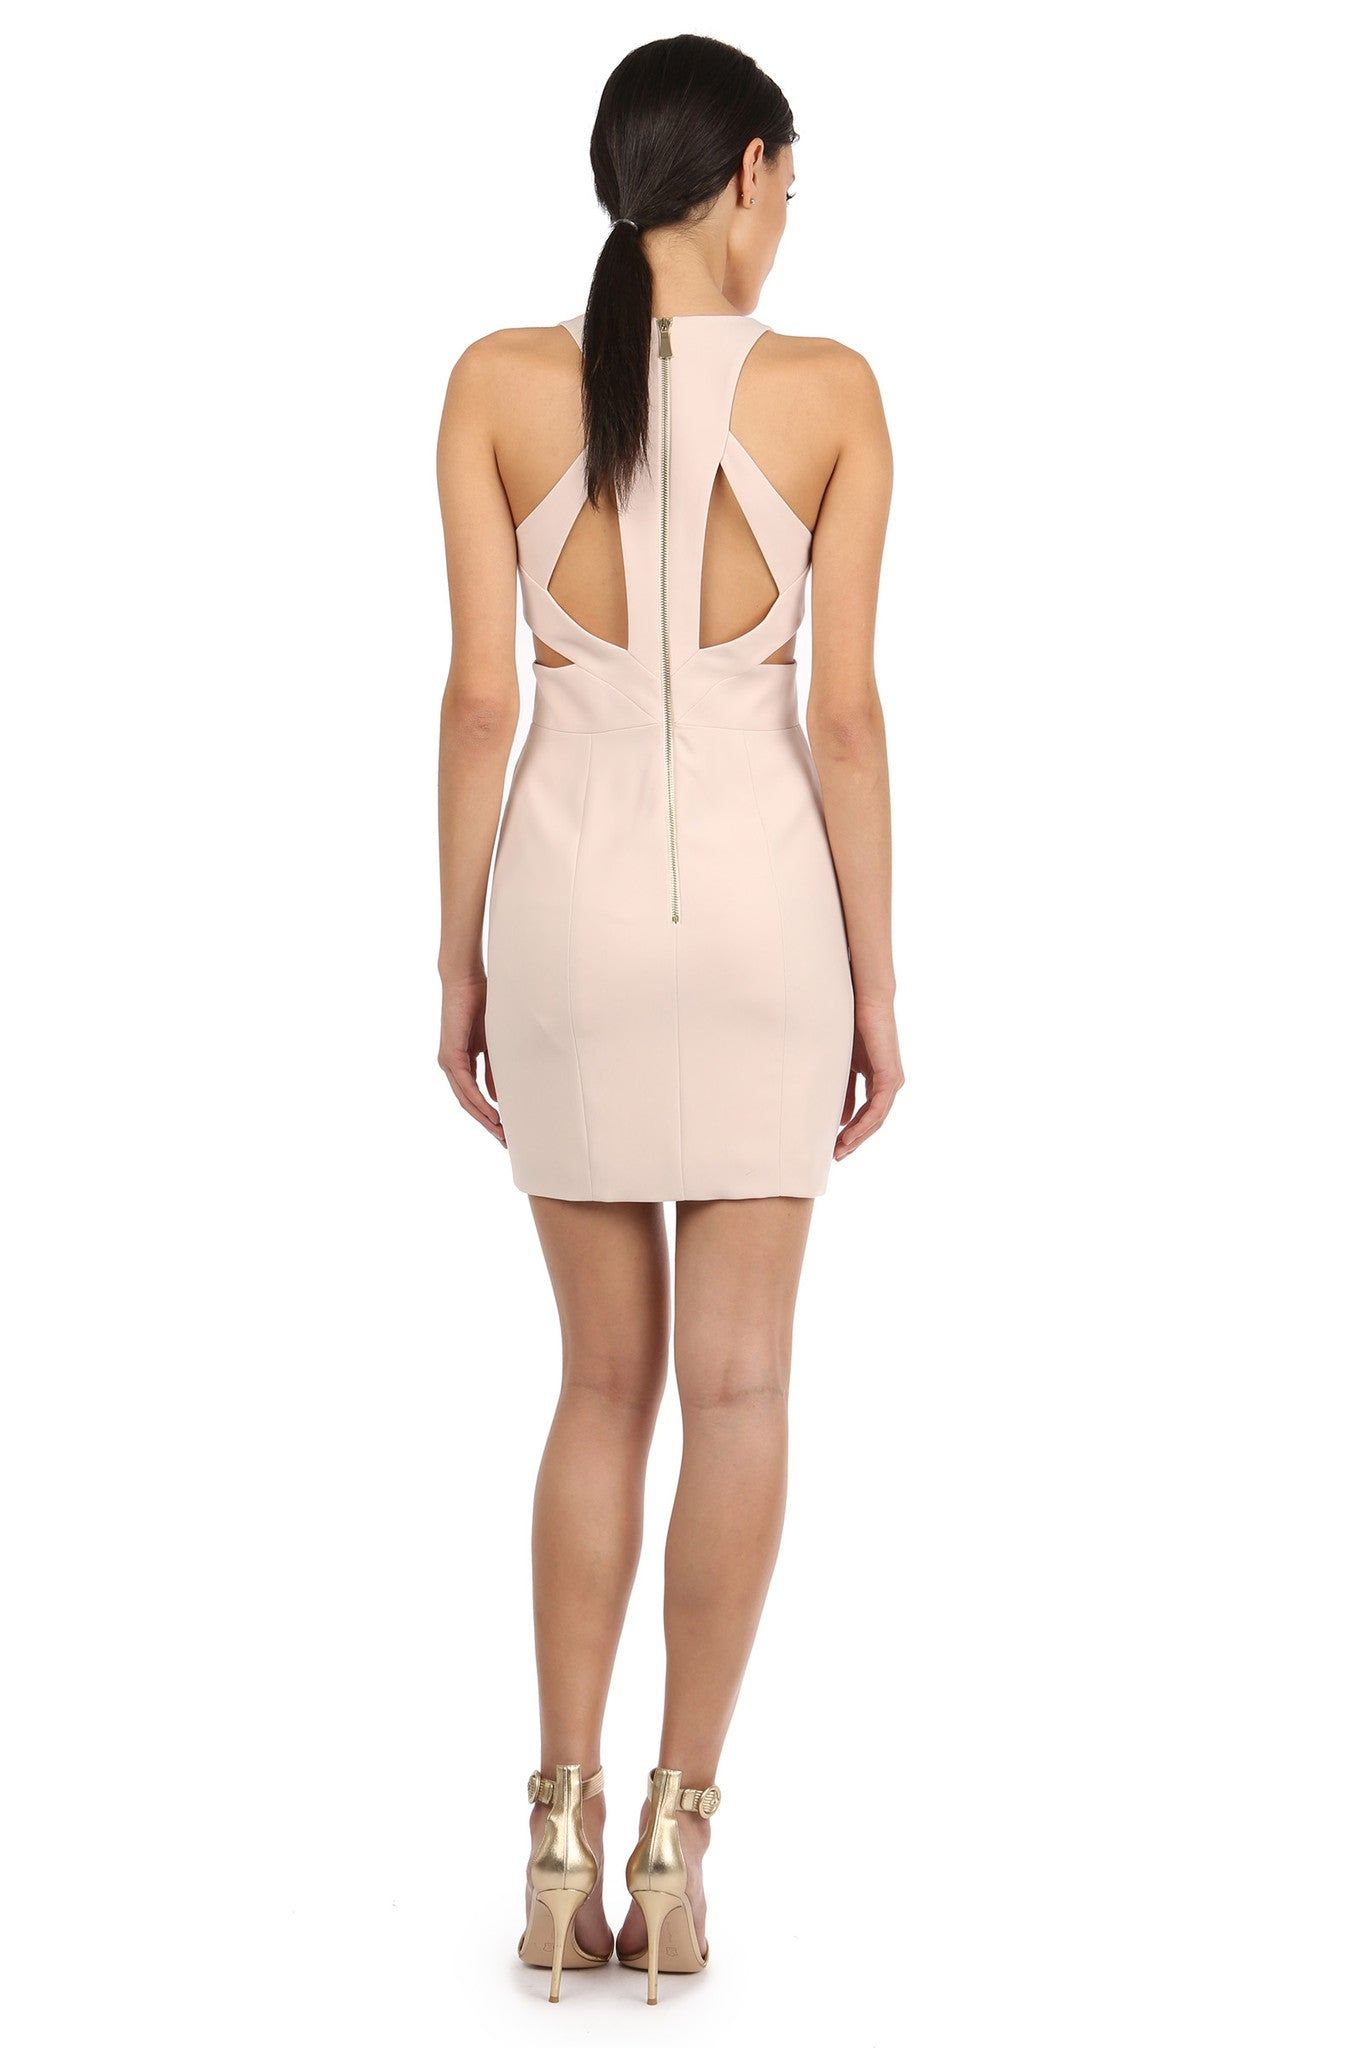 Jay Godfrey Sand Cut-Out Mini Dress - Back View